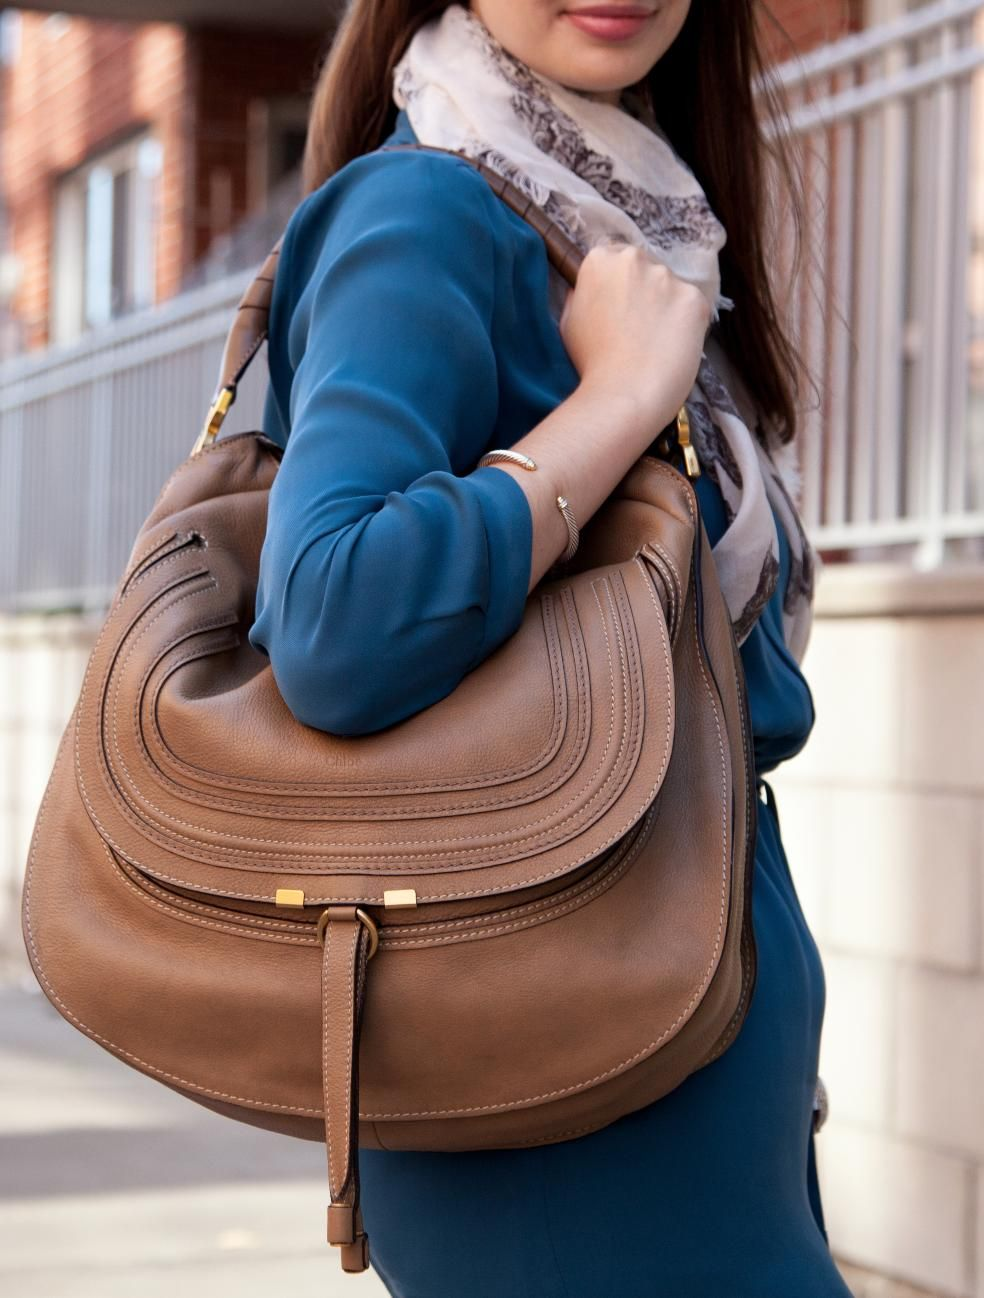 52dac97d5 Chloé Marcie hobo in chestnut brown. This variation lacks the vase-like  curve at top. Showing because while labeled as a hobo, this bag retains the  size and ...